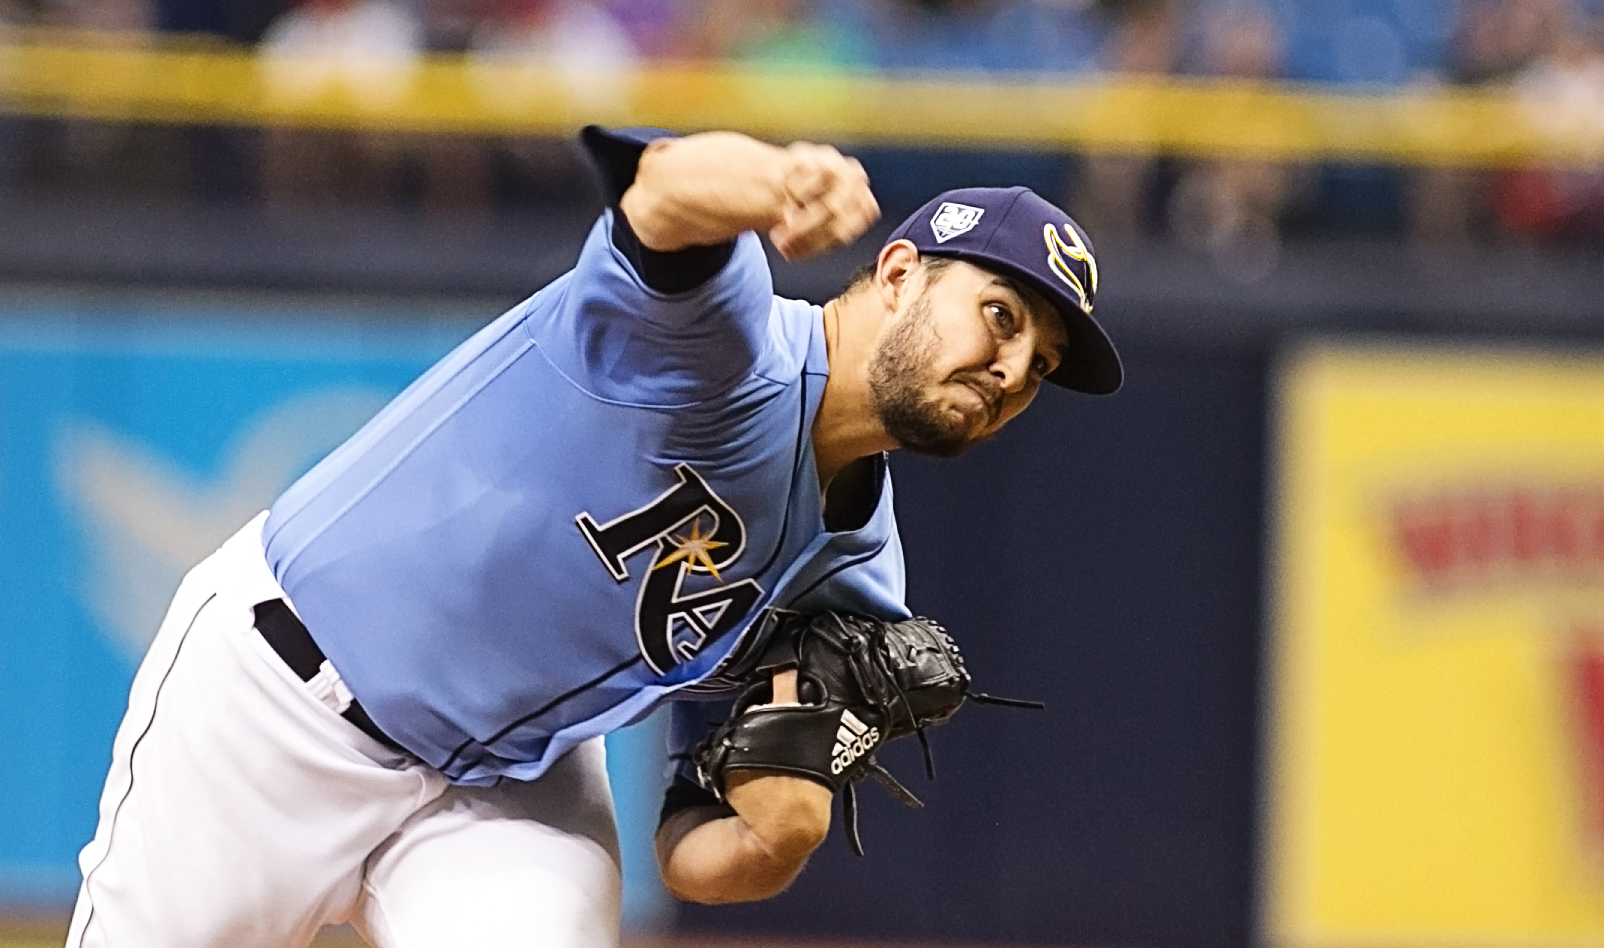 Faria lasted only four innings for the Rays./CRMON MANDATO